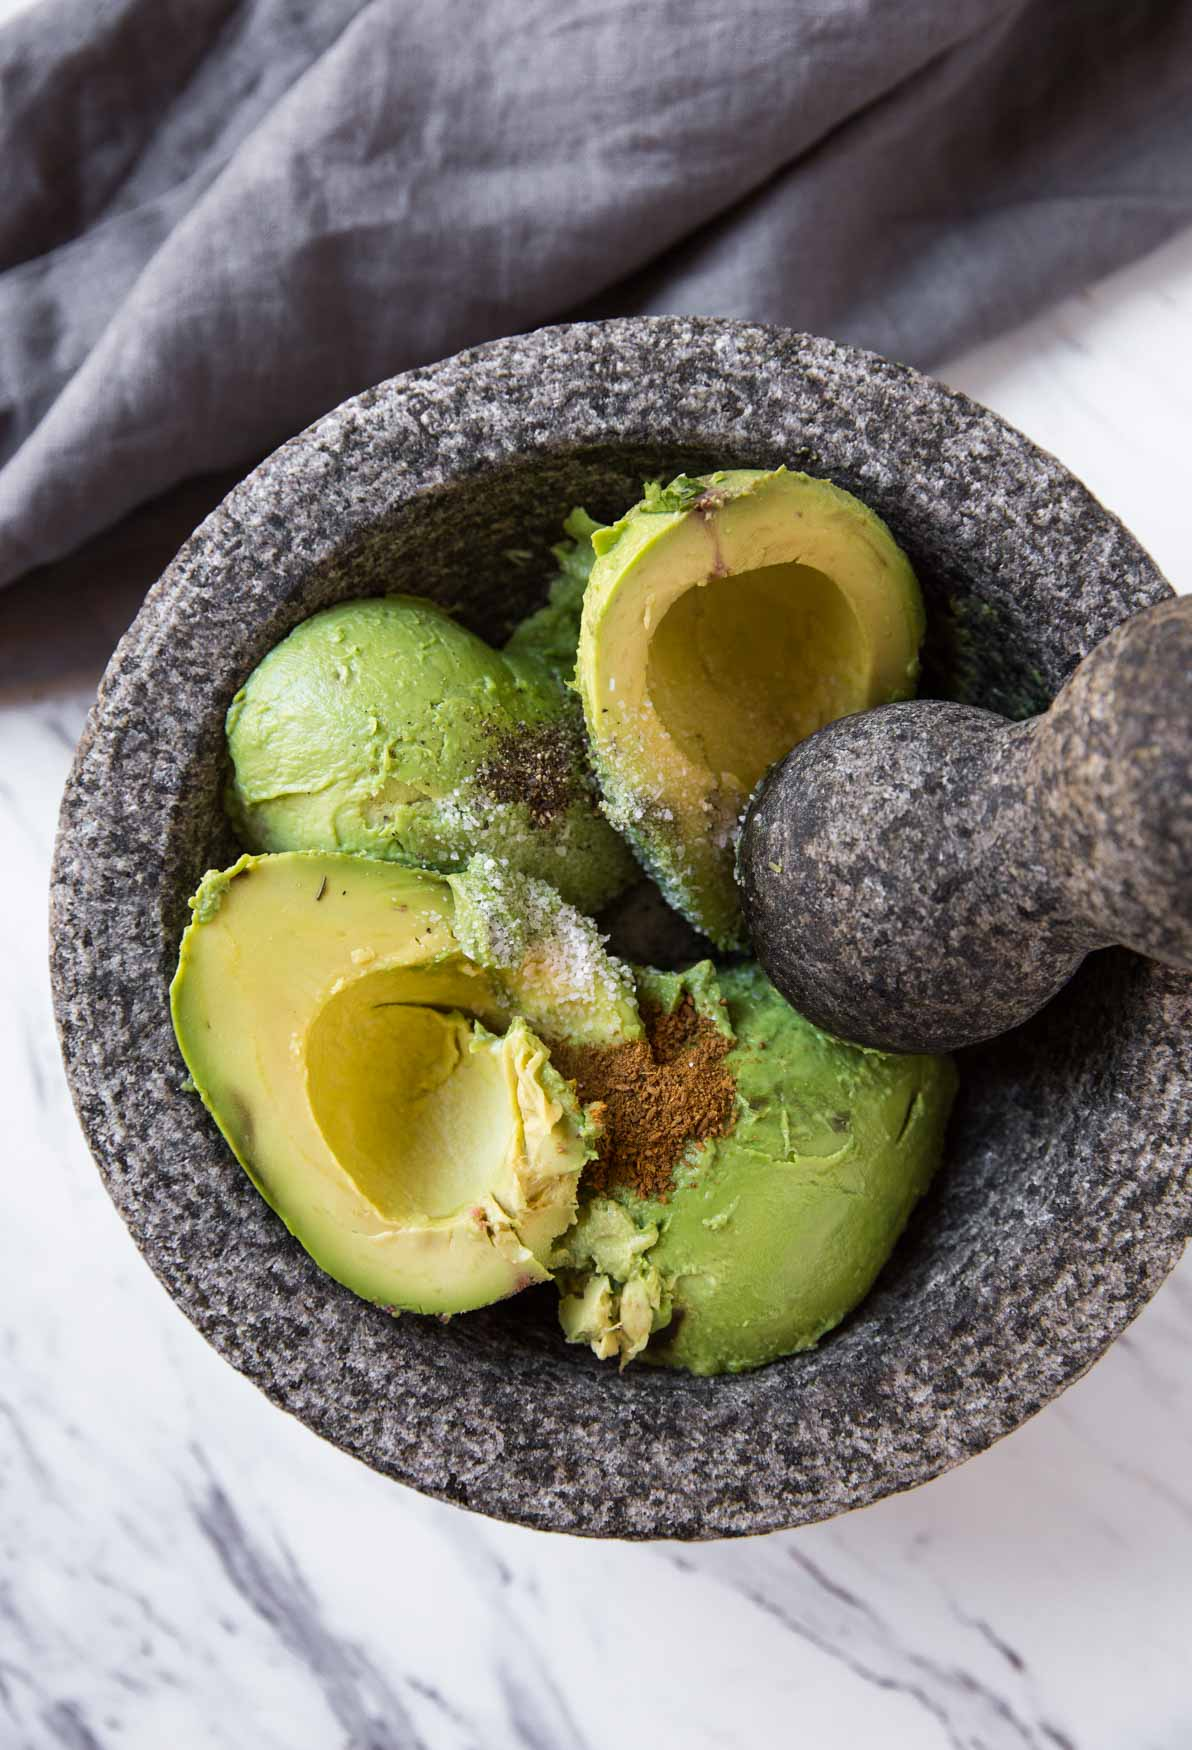 Peeled and pitted avocados in the molcajete for making fresh and healthy guacamole